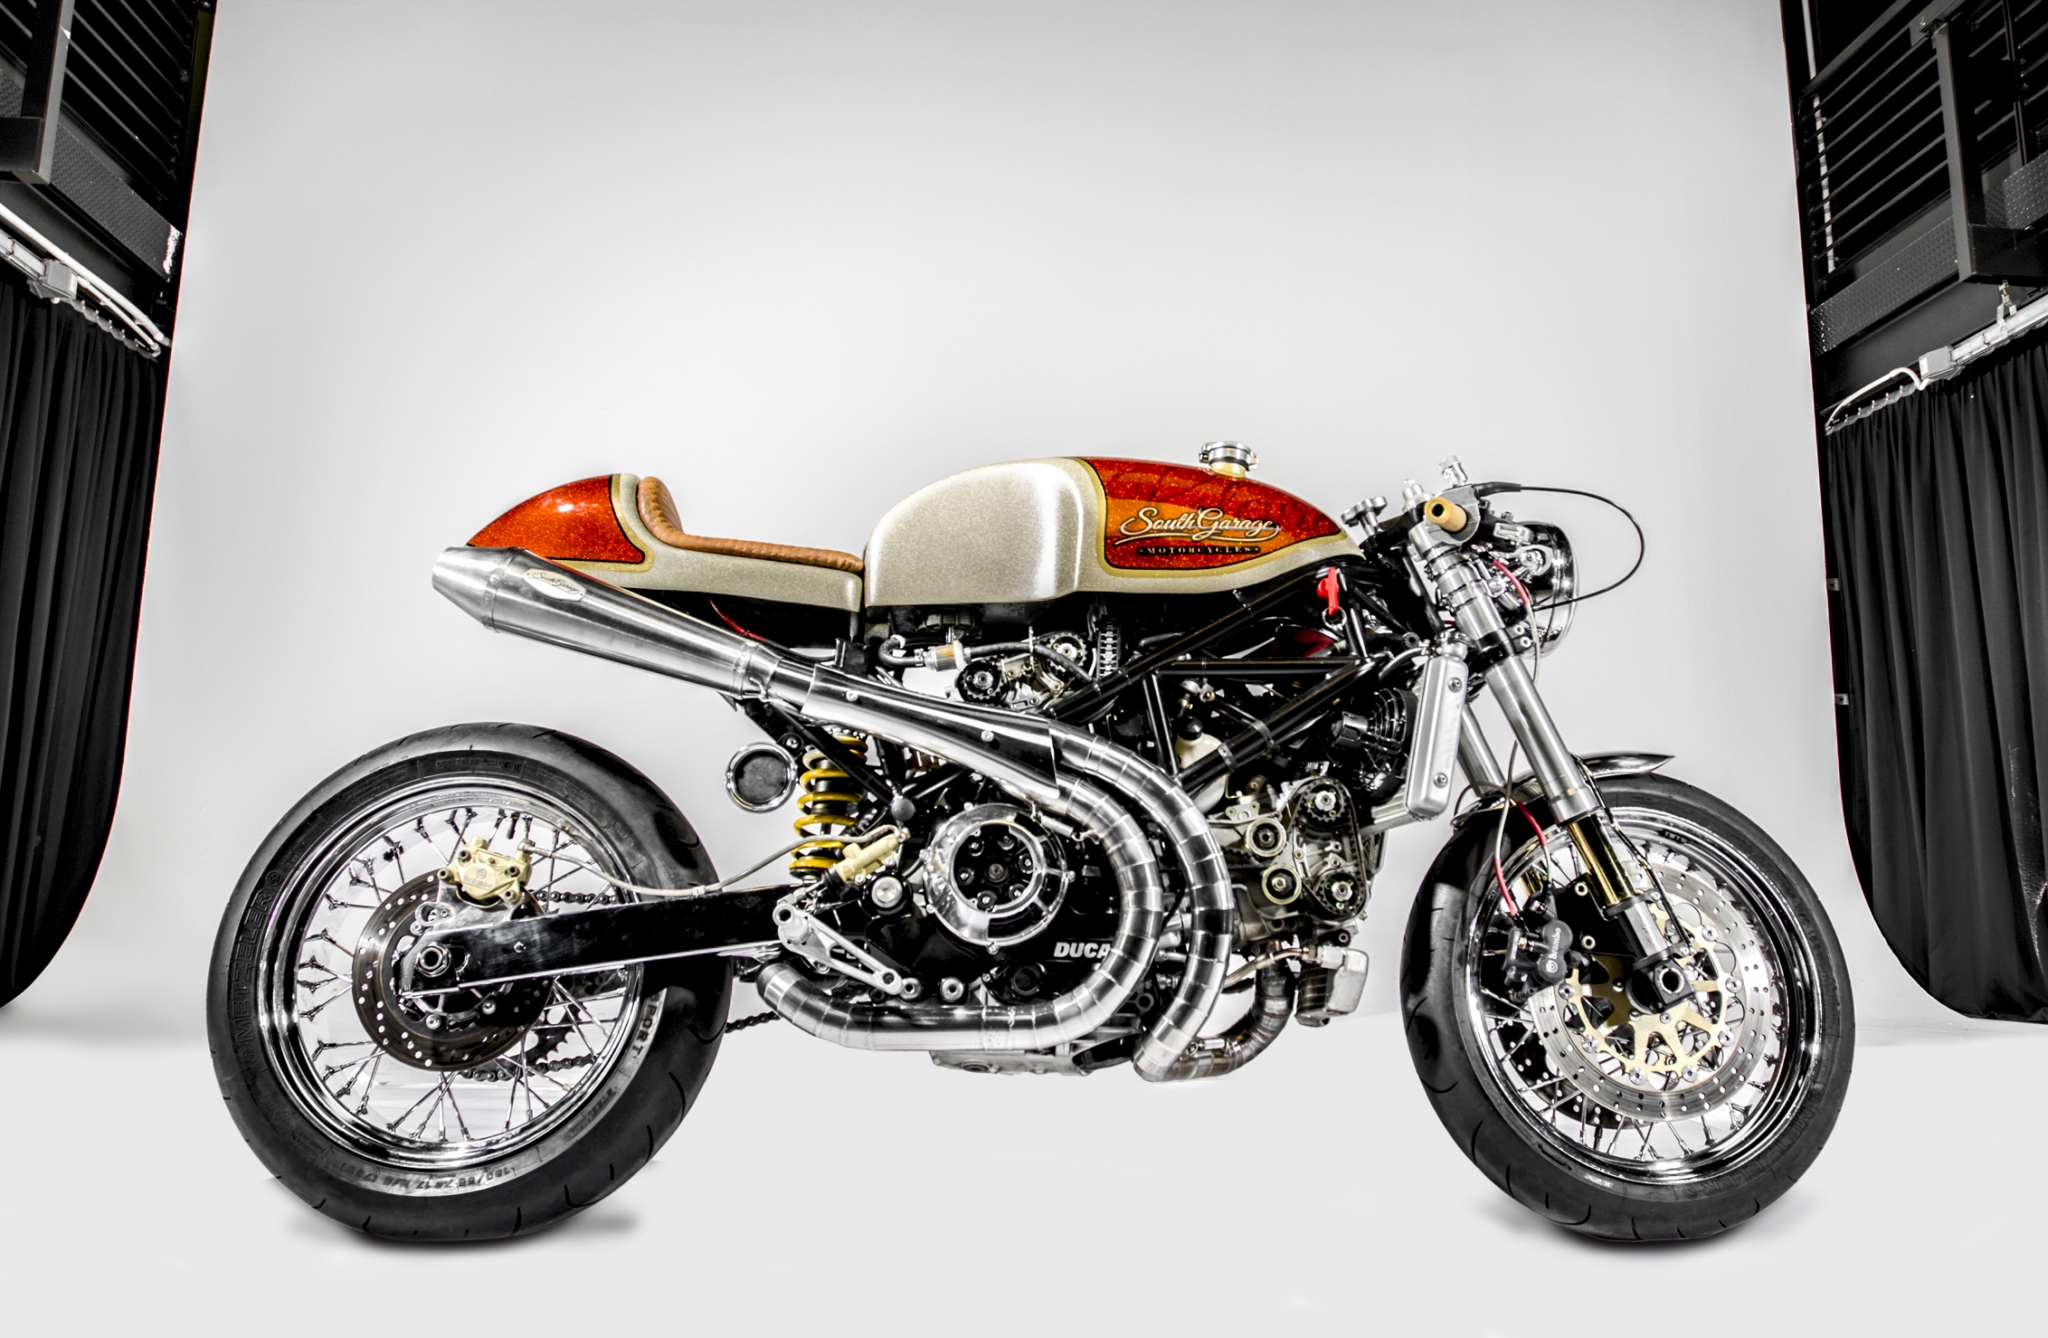 Kelevra One Of The Most Beautiful Cafe Racers In The